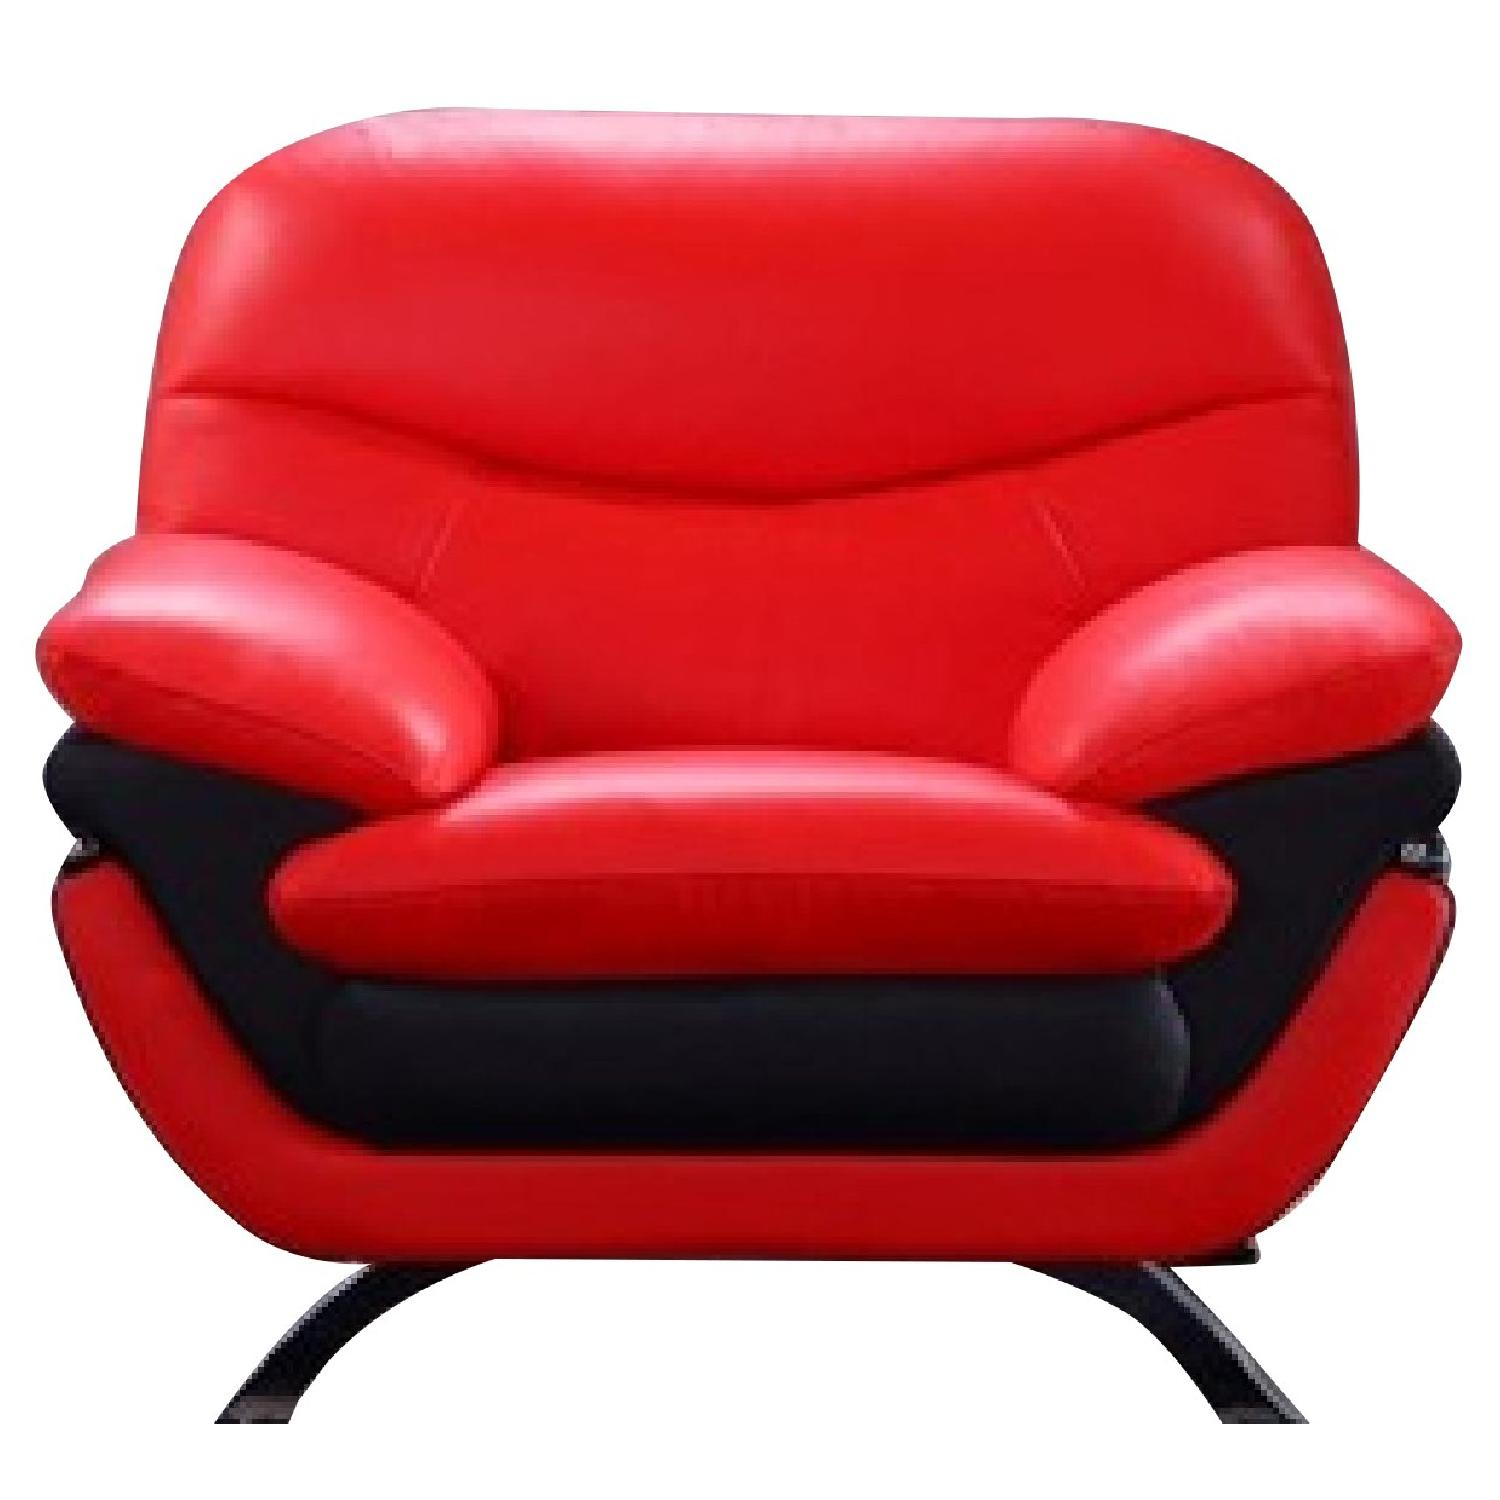 Modern Arm Chair in 2-Tone Red-Black Top Grain Leather w/ Sloped Armrests & Chrome Legs